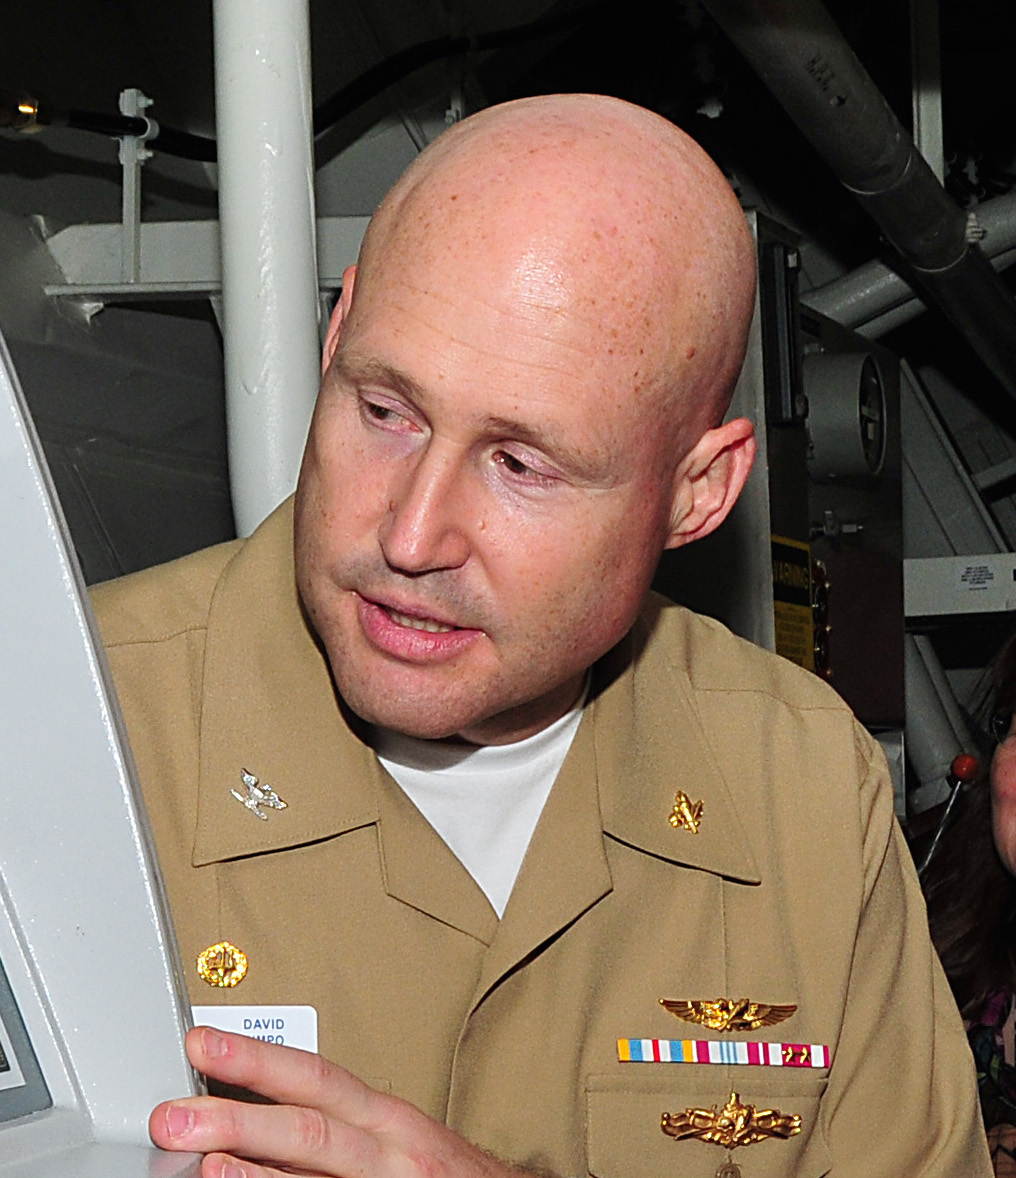 Then Capt. David Pimpo, commanding officer of Fleet and Industrial Supply Center (FISC) San Diego in 2011. US Navy Photo